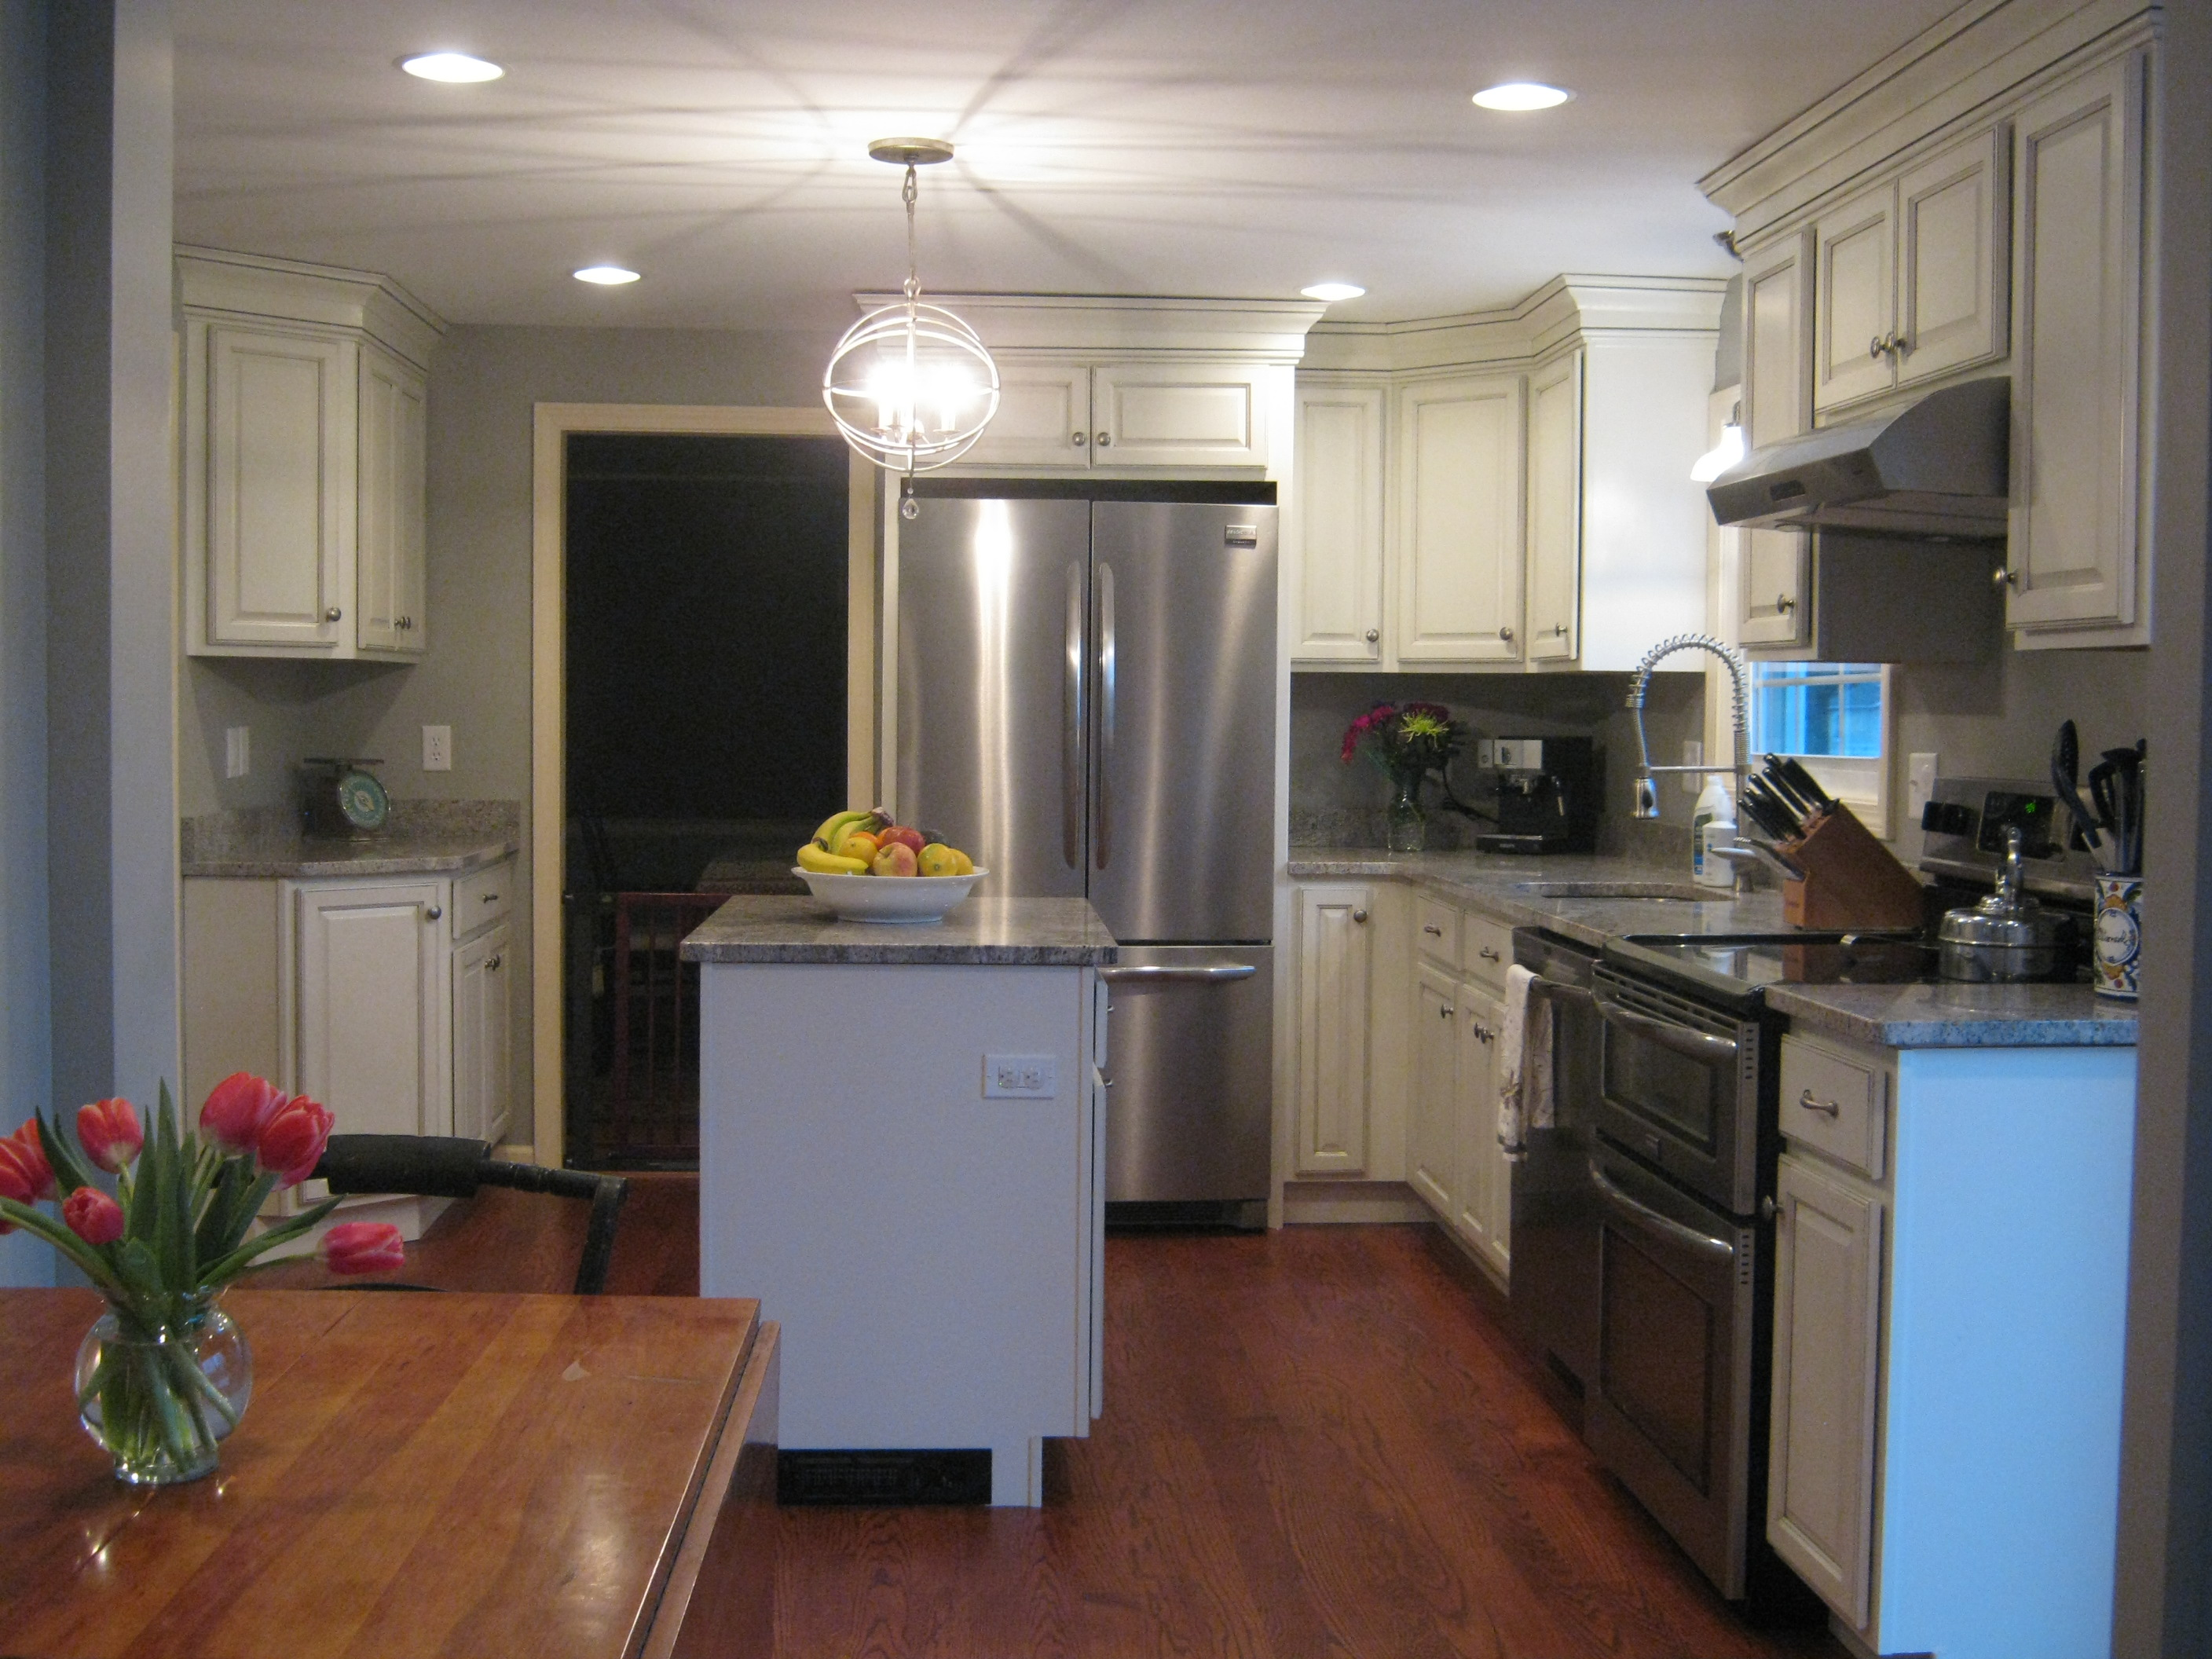 kitchen and bath design and construction west hartford west hartford kitchen remodel regan total construction 400